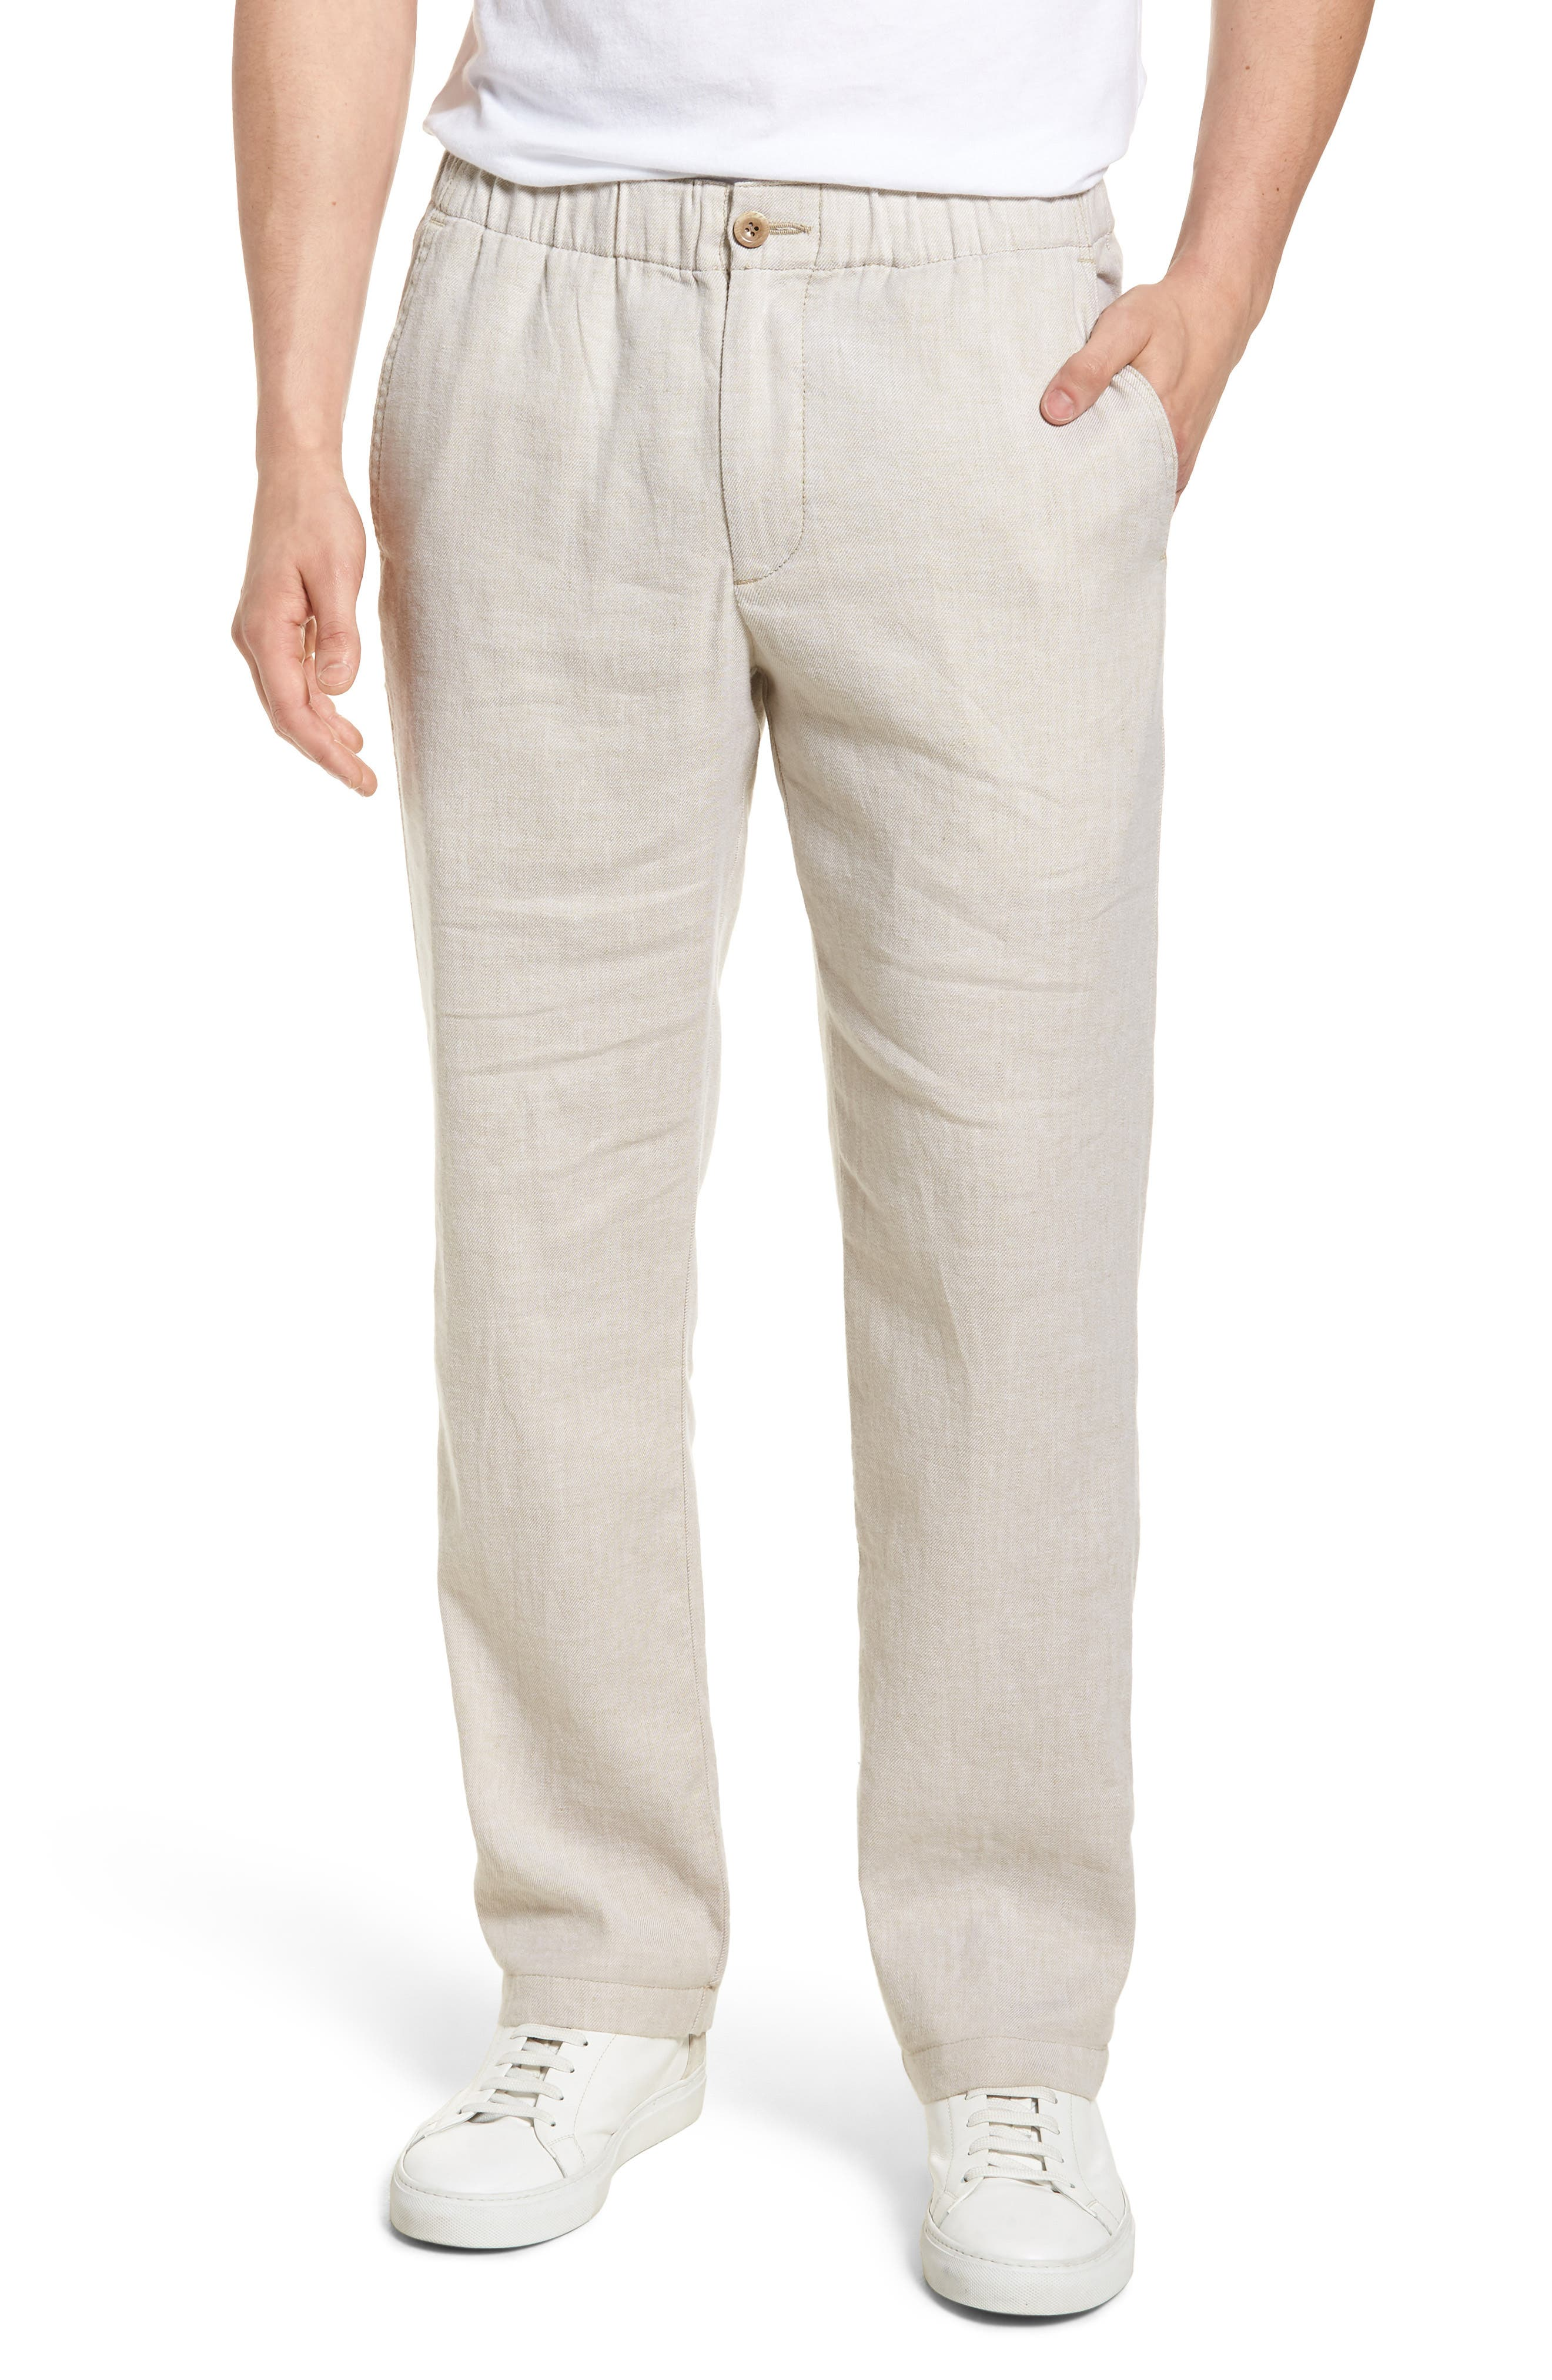 TOMMY BAHAMA,                             Beach Linen Blend Pants,                             Main thumbnail 1, color,                             STONE KHAKI